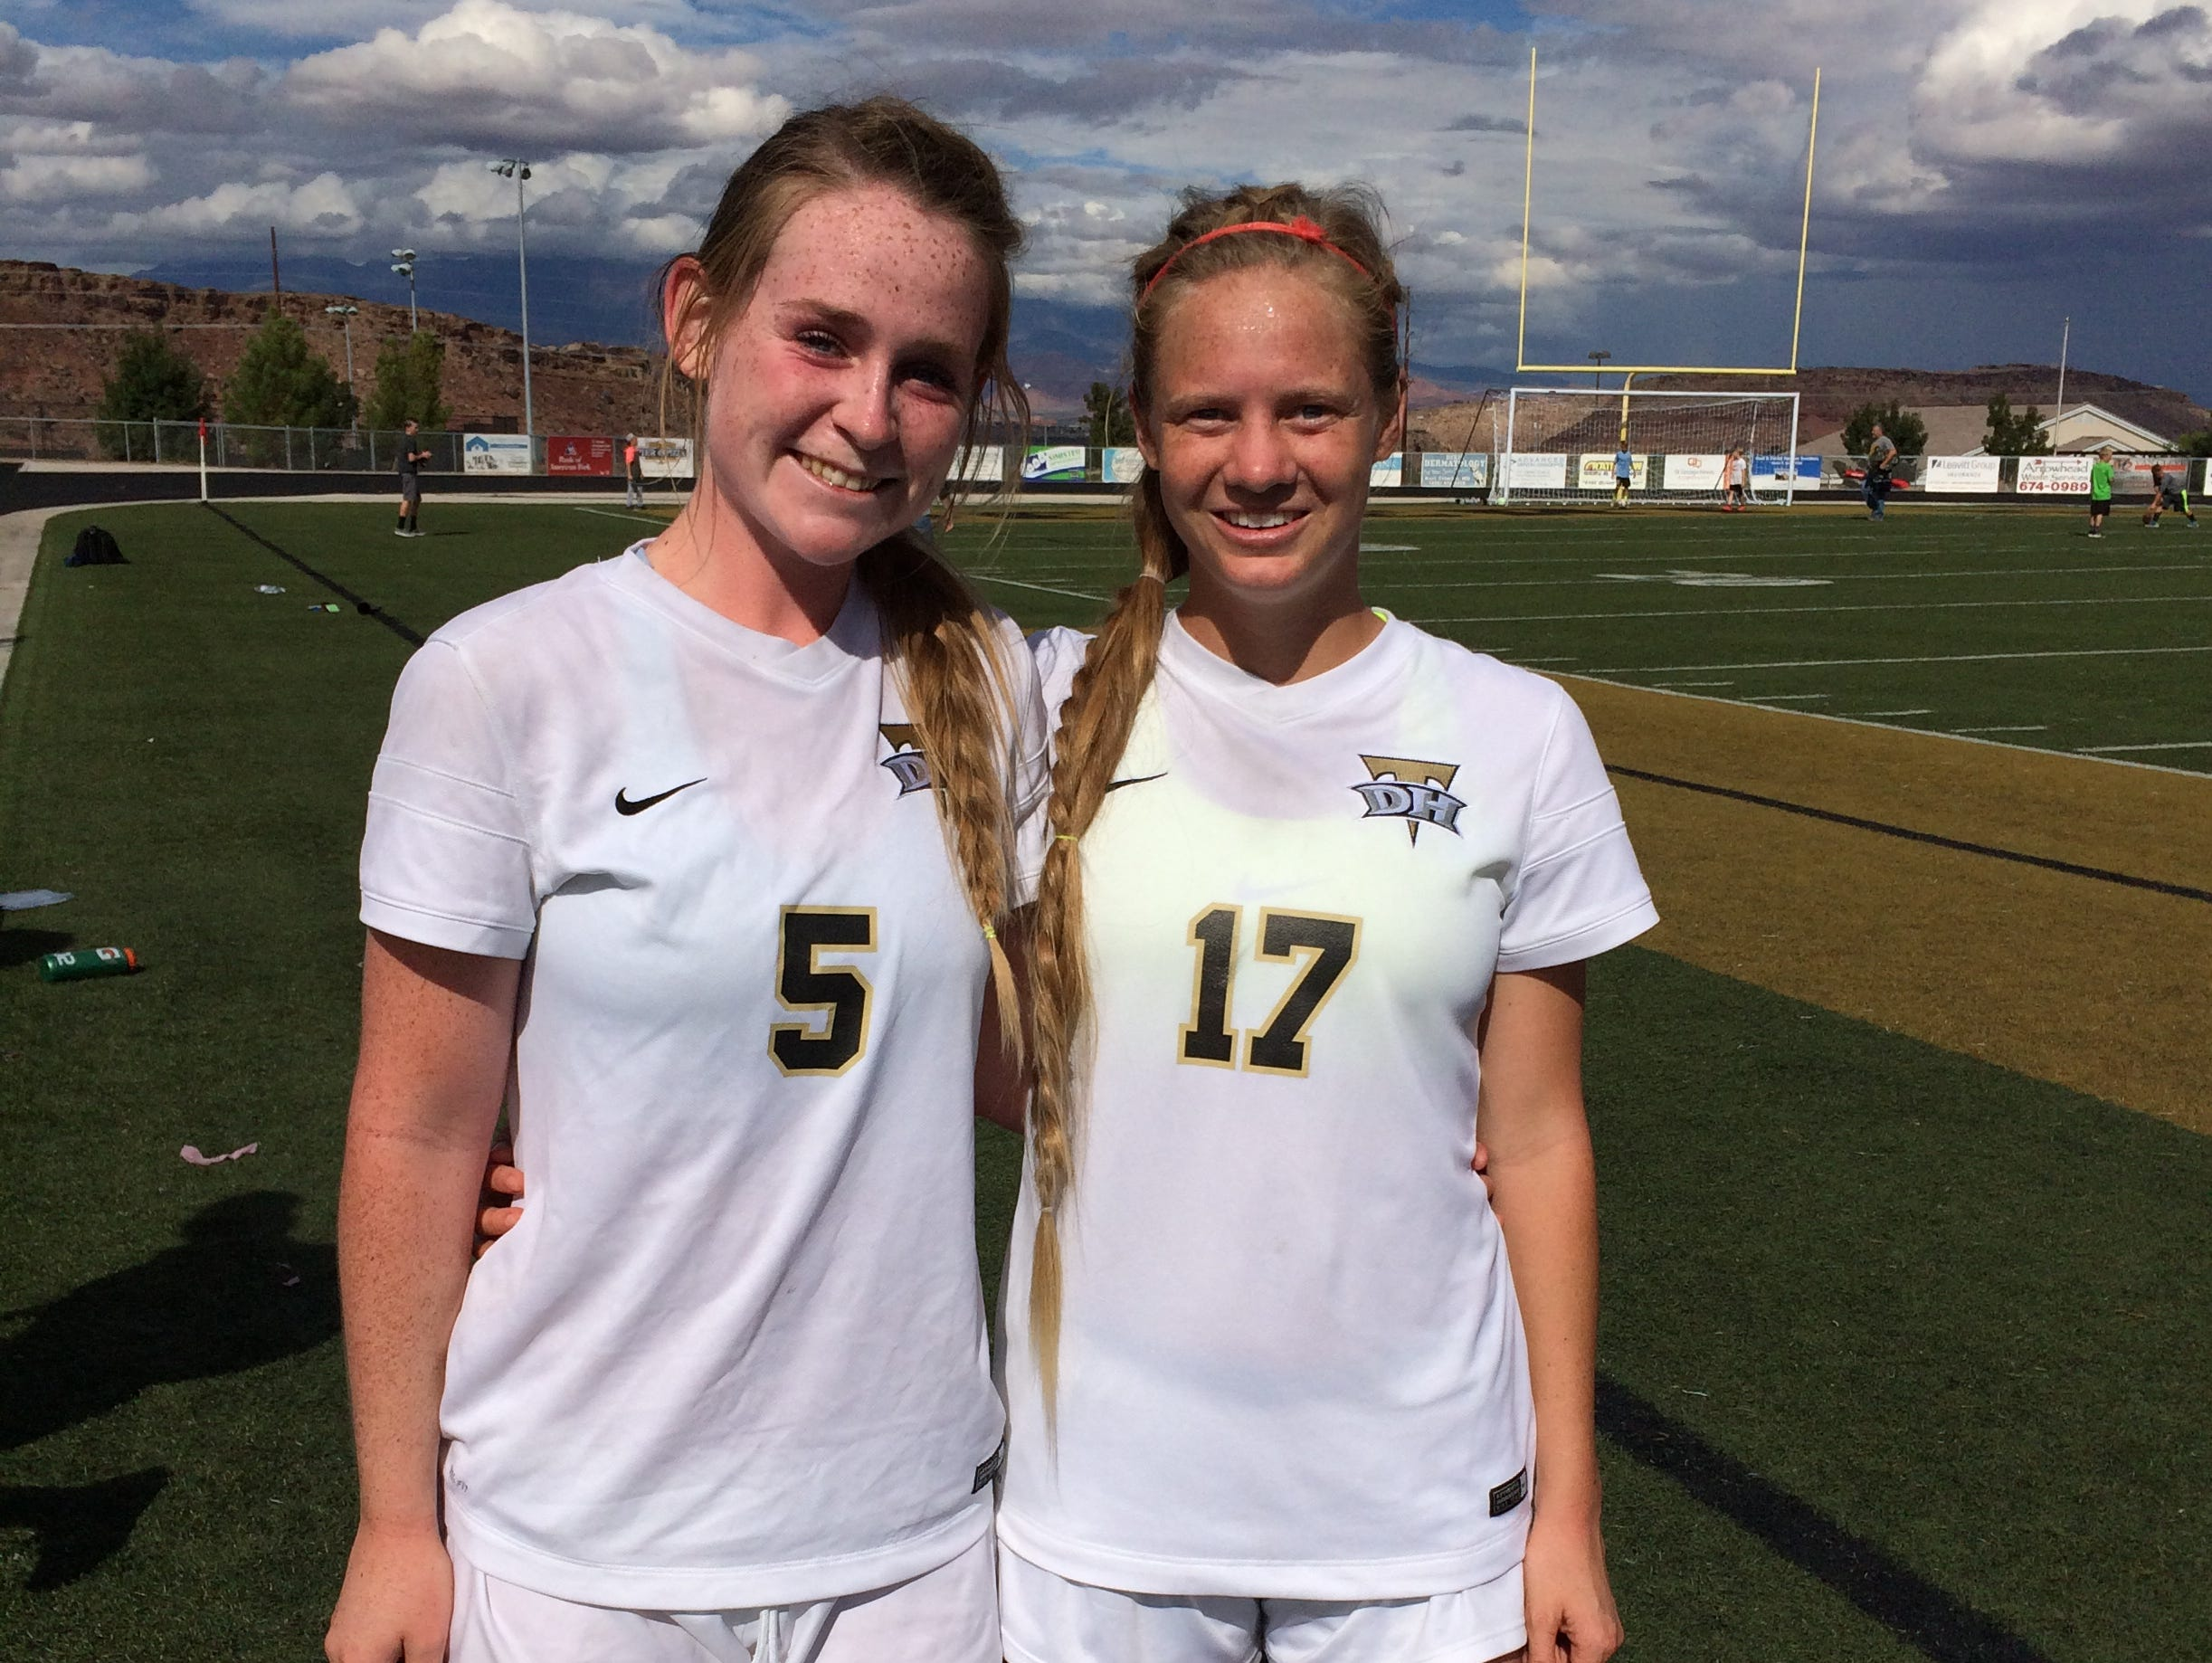 Desert Hills' Brenna Owen and Madi Hansen each scored a goal in a 4-1 win over Morgan on Saturday. The Thunder will face Logan in the 3A semis on Friday.